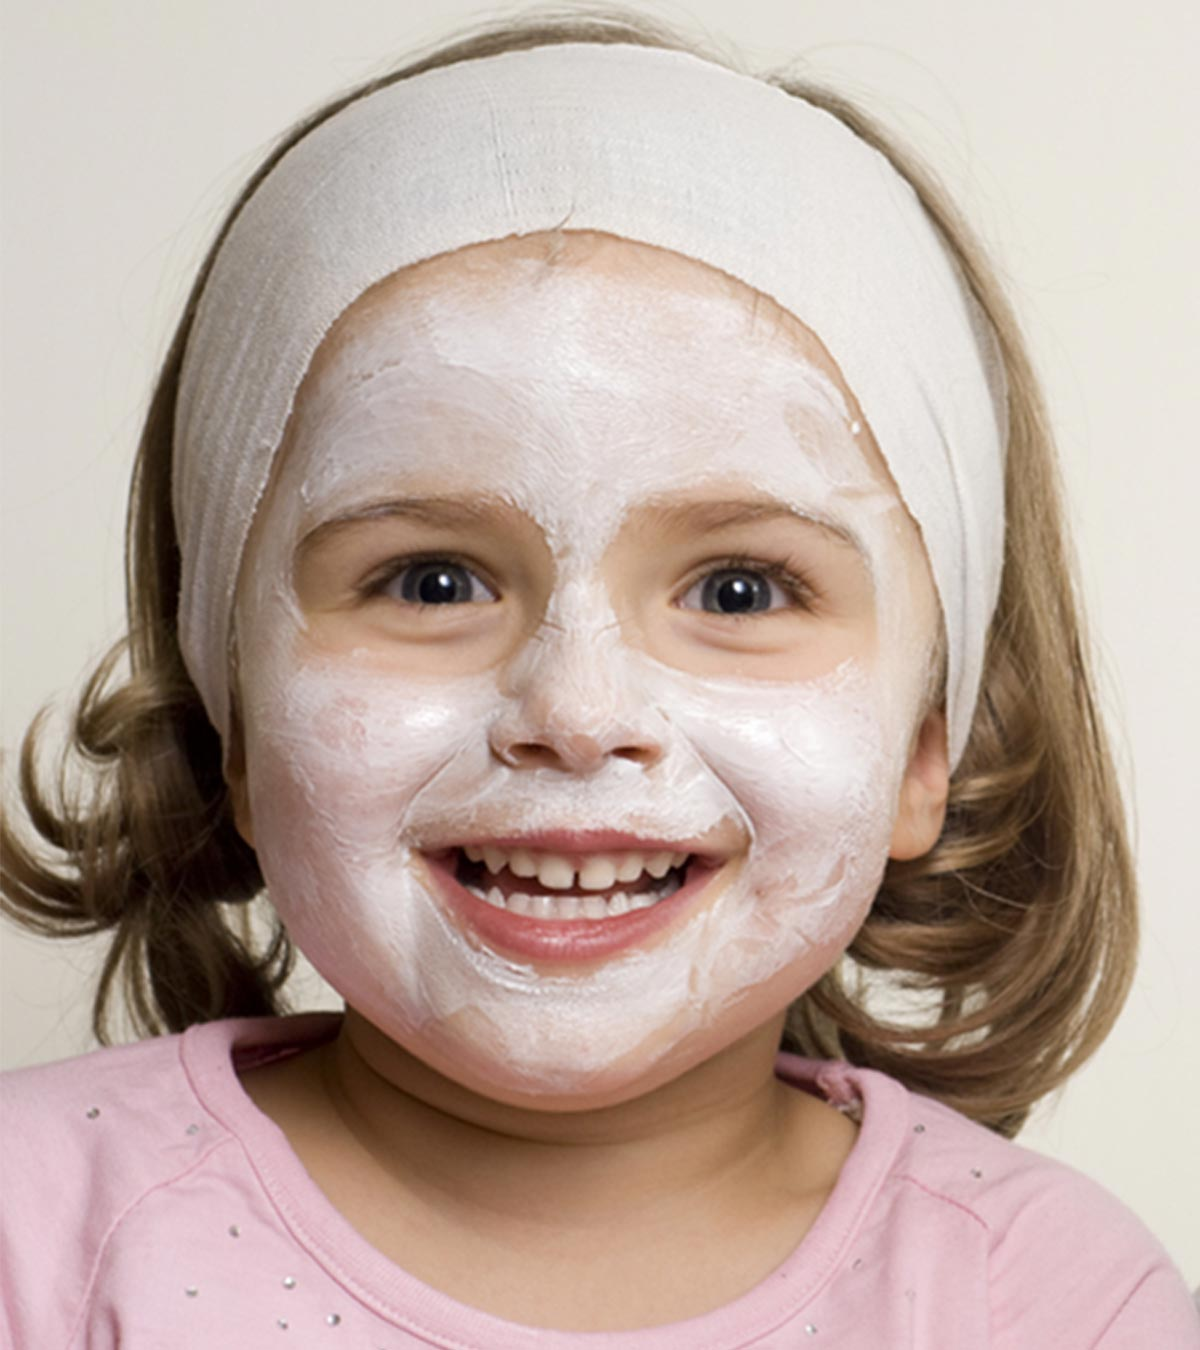 How To Make A Homemade Face Mask For Kids